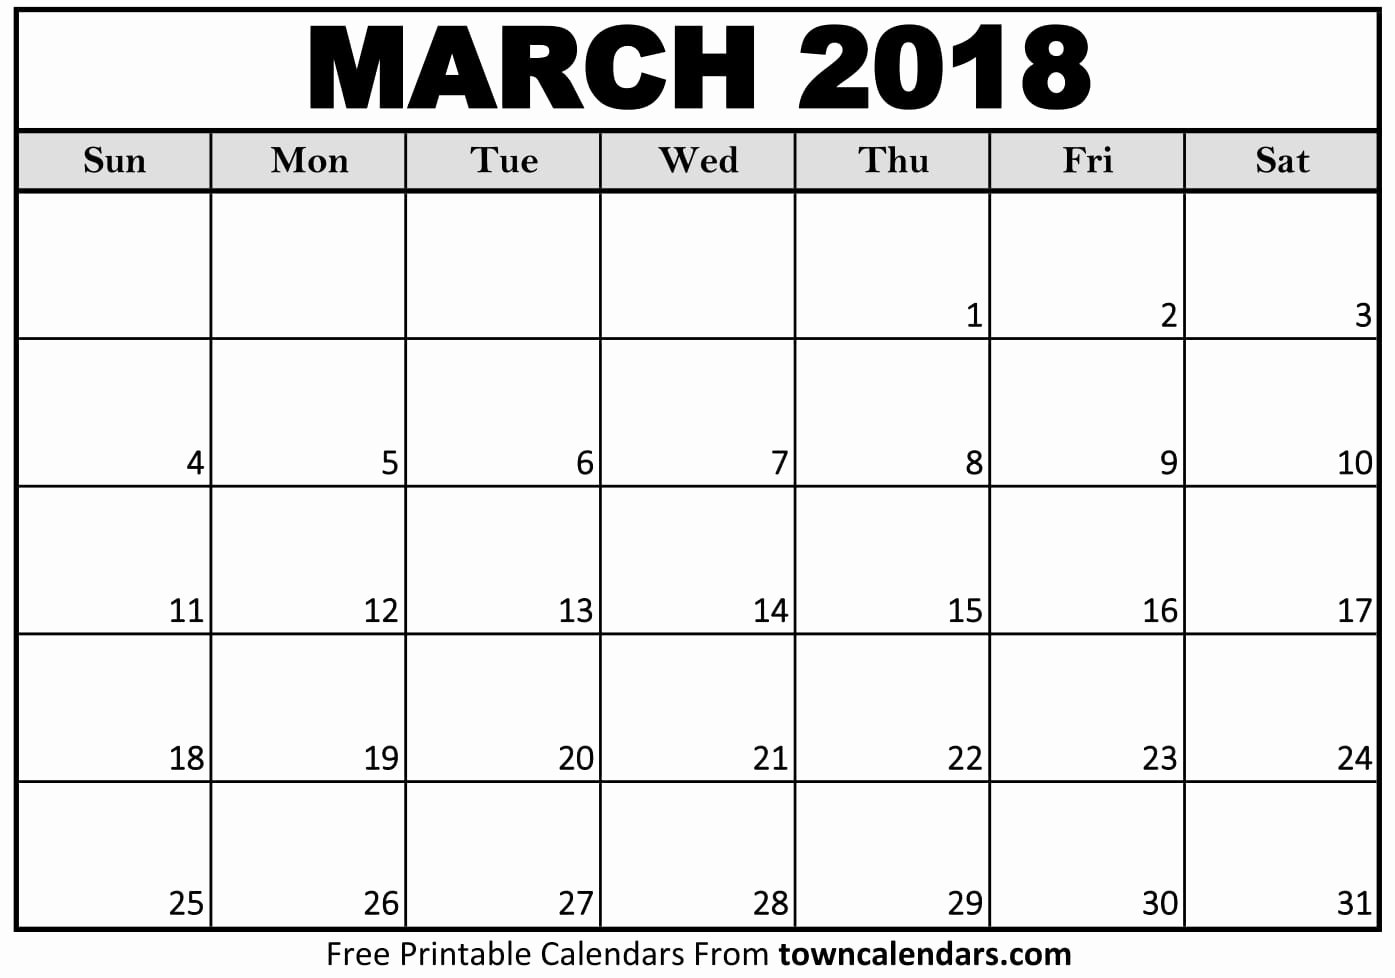 Calendar Template for Pages Mac Luxury Printable March 2018 Calendar towncalendars